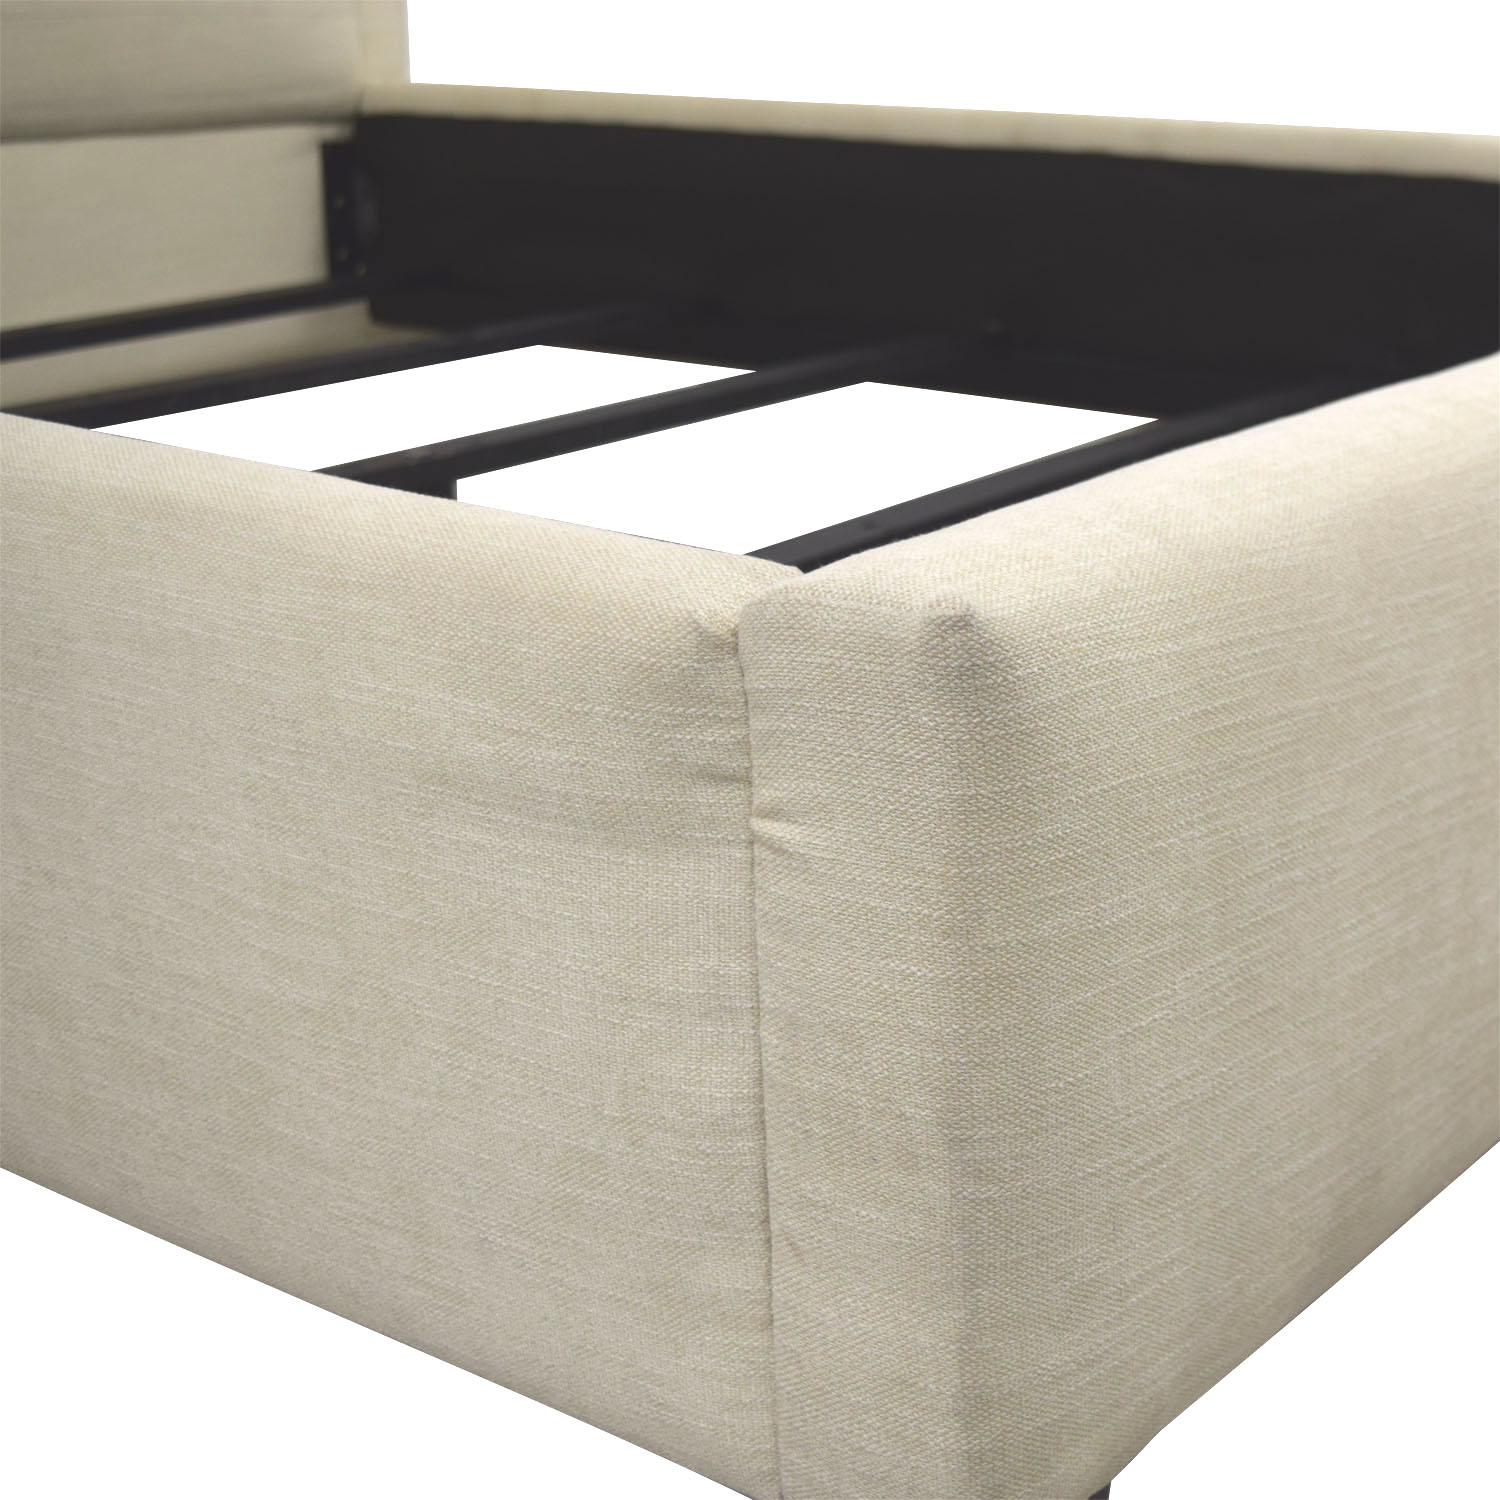 Pottery Barn Pottery Barn Upholstered York Queen Bed price